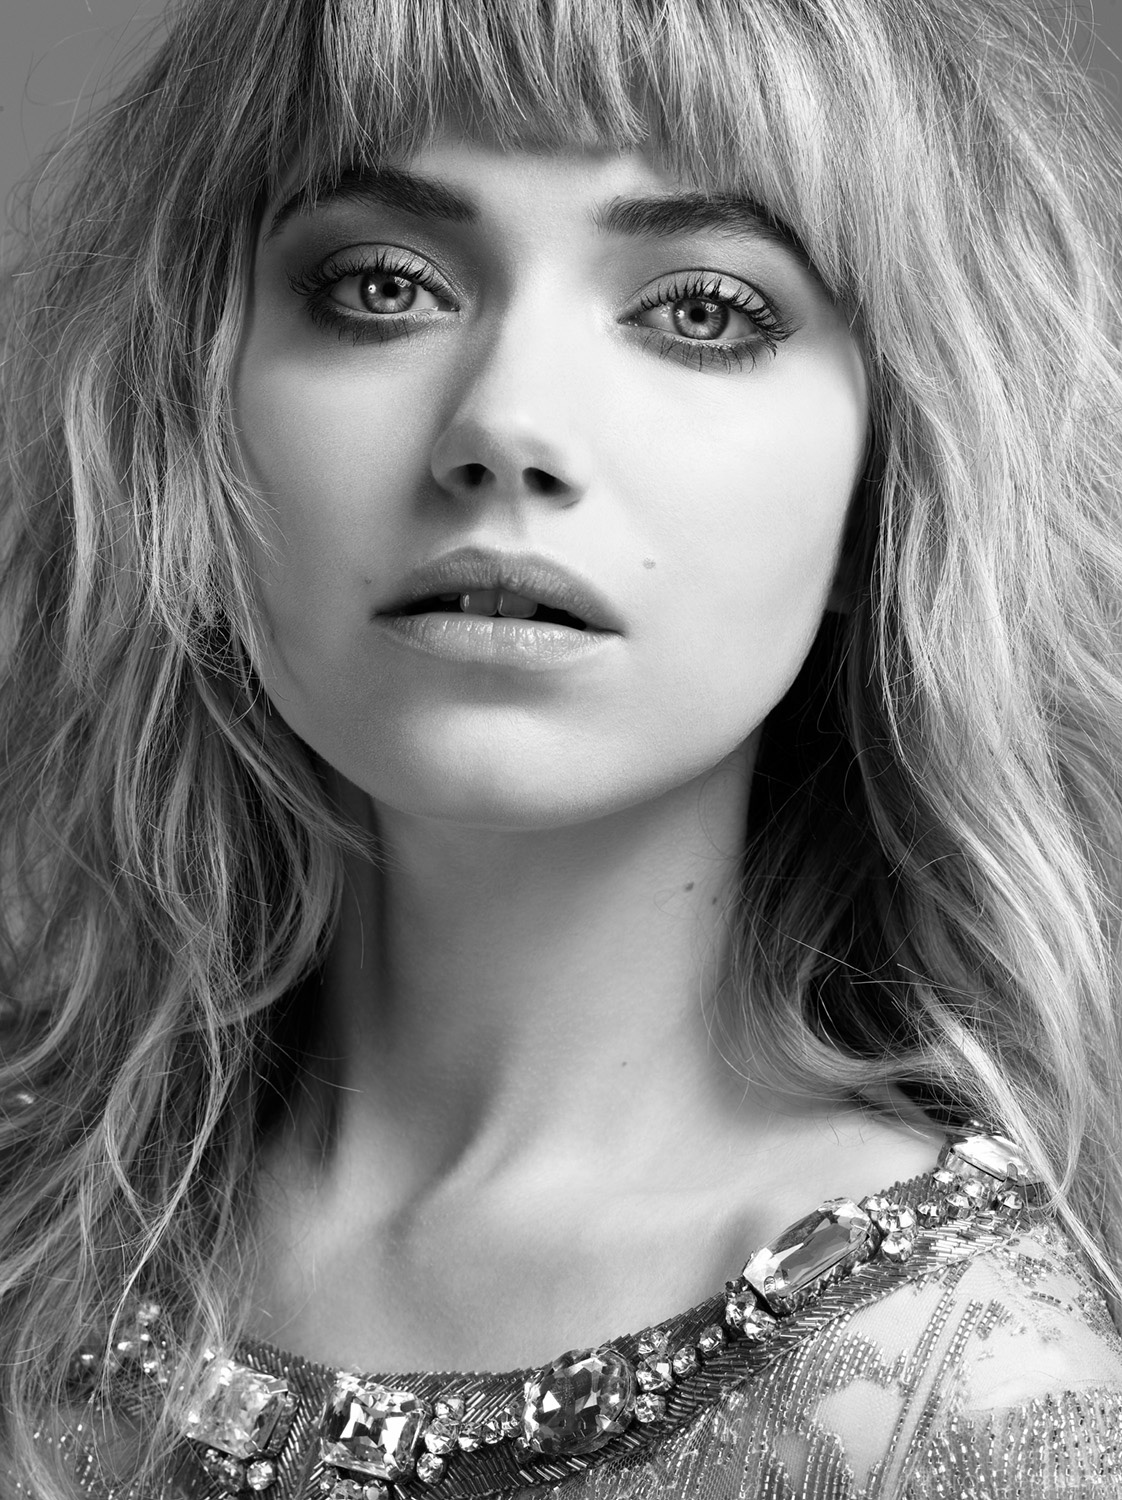 Imogen-Poots-Photography-by-Indira-Cesarine-001.jpg